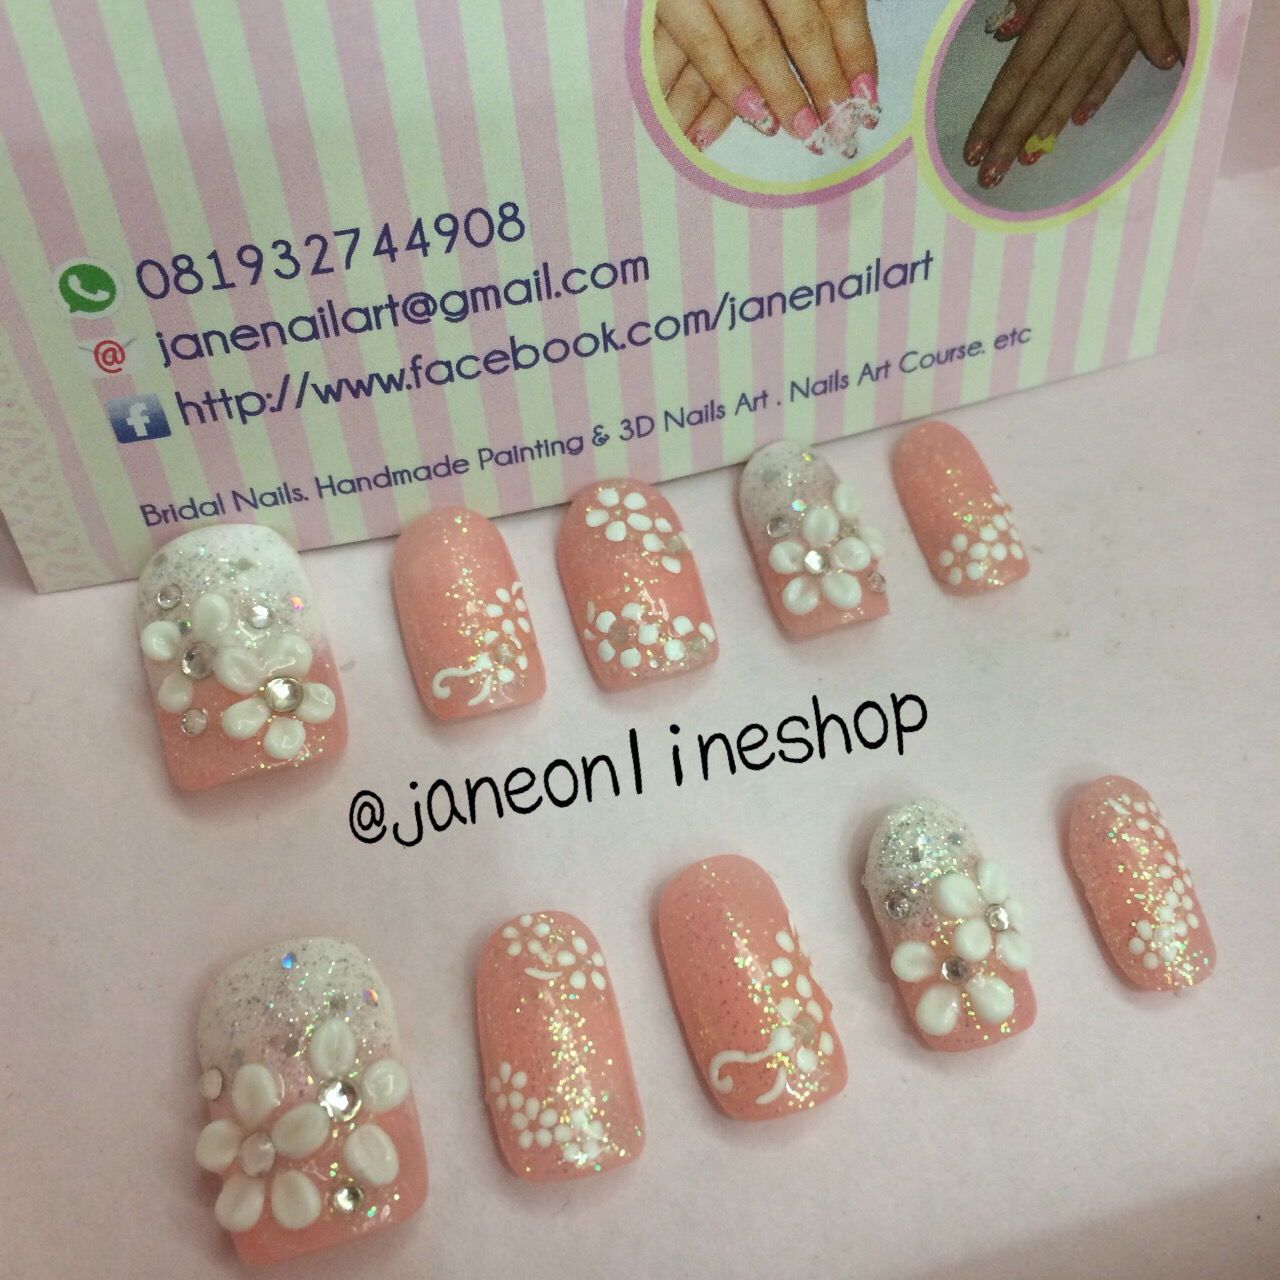 Wedding Party Fake Nails Red Flower Kuku Palsu Pernikahan 3d Beli Jbs A61 Nikah False Nailart Source Jual Nail Art Peach Jane Tokopedia